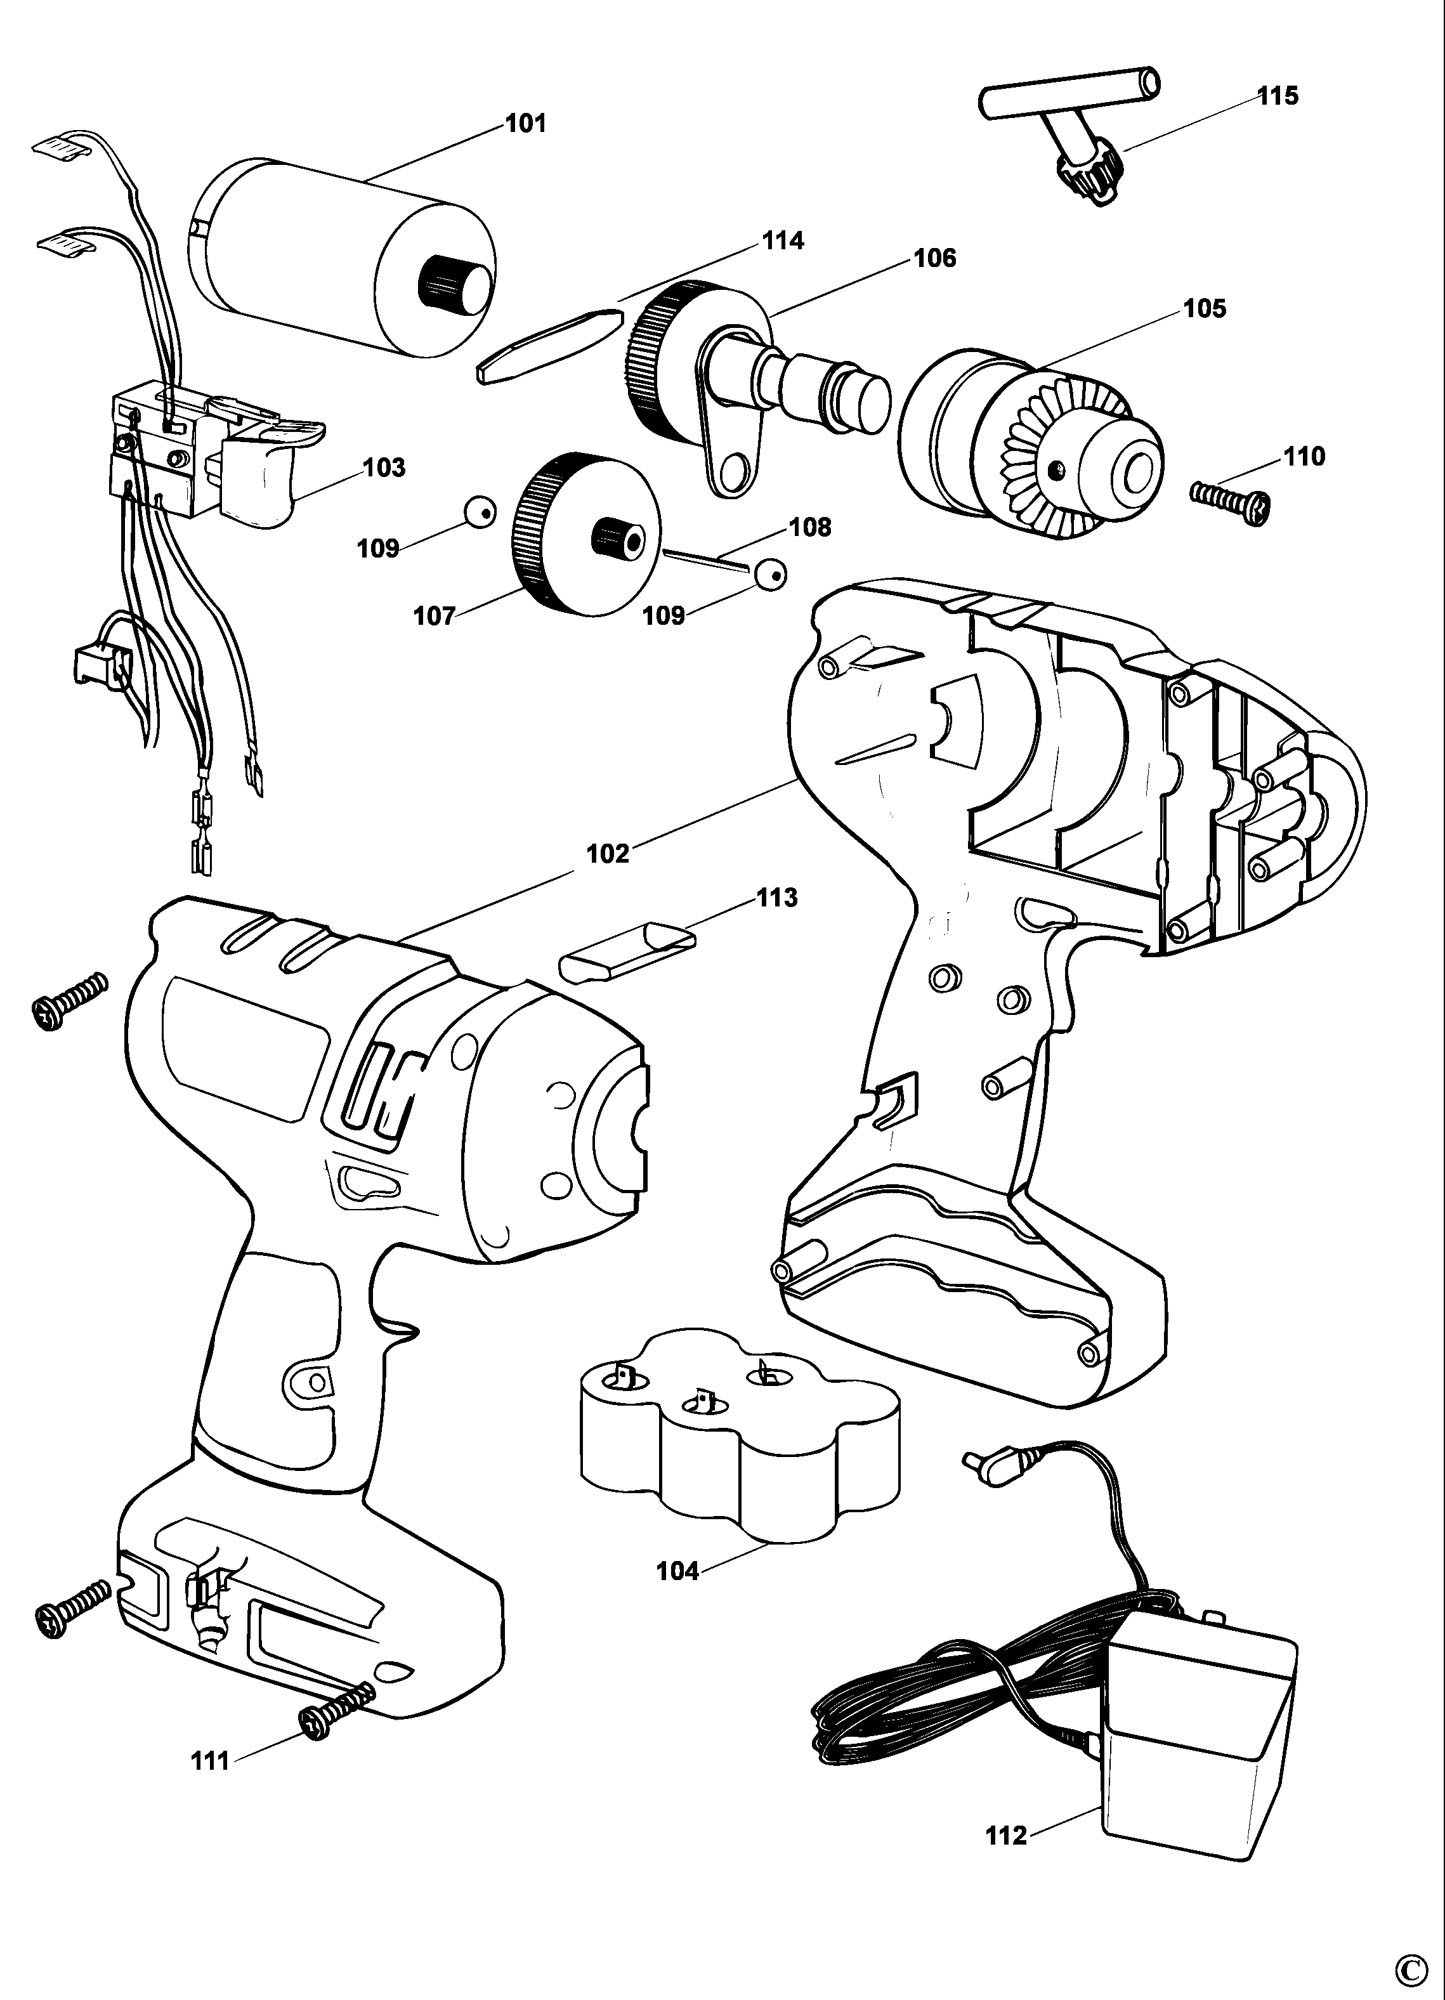 Spares for Black & Decker Kc9099 Cordless Drill (type 1